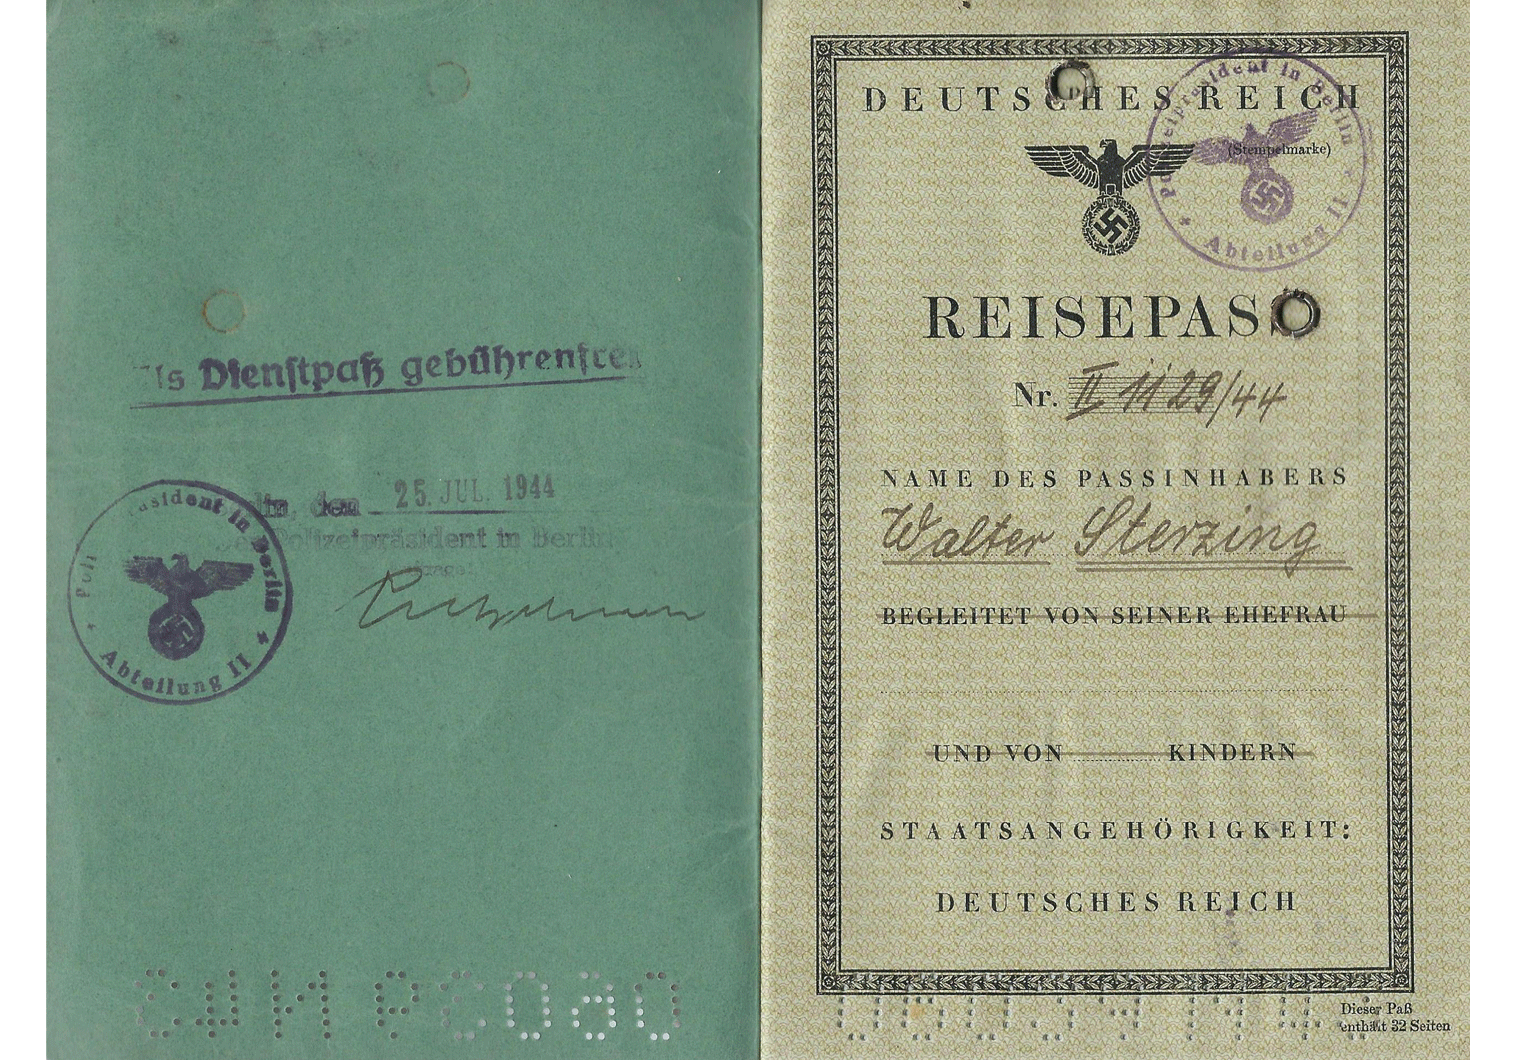 1944 German Dienstpass